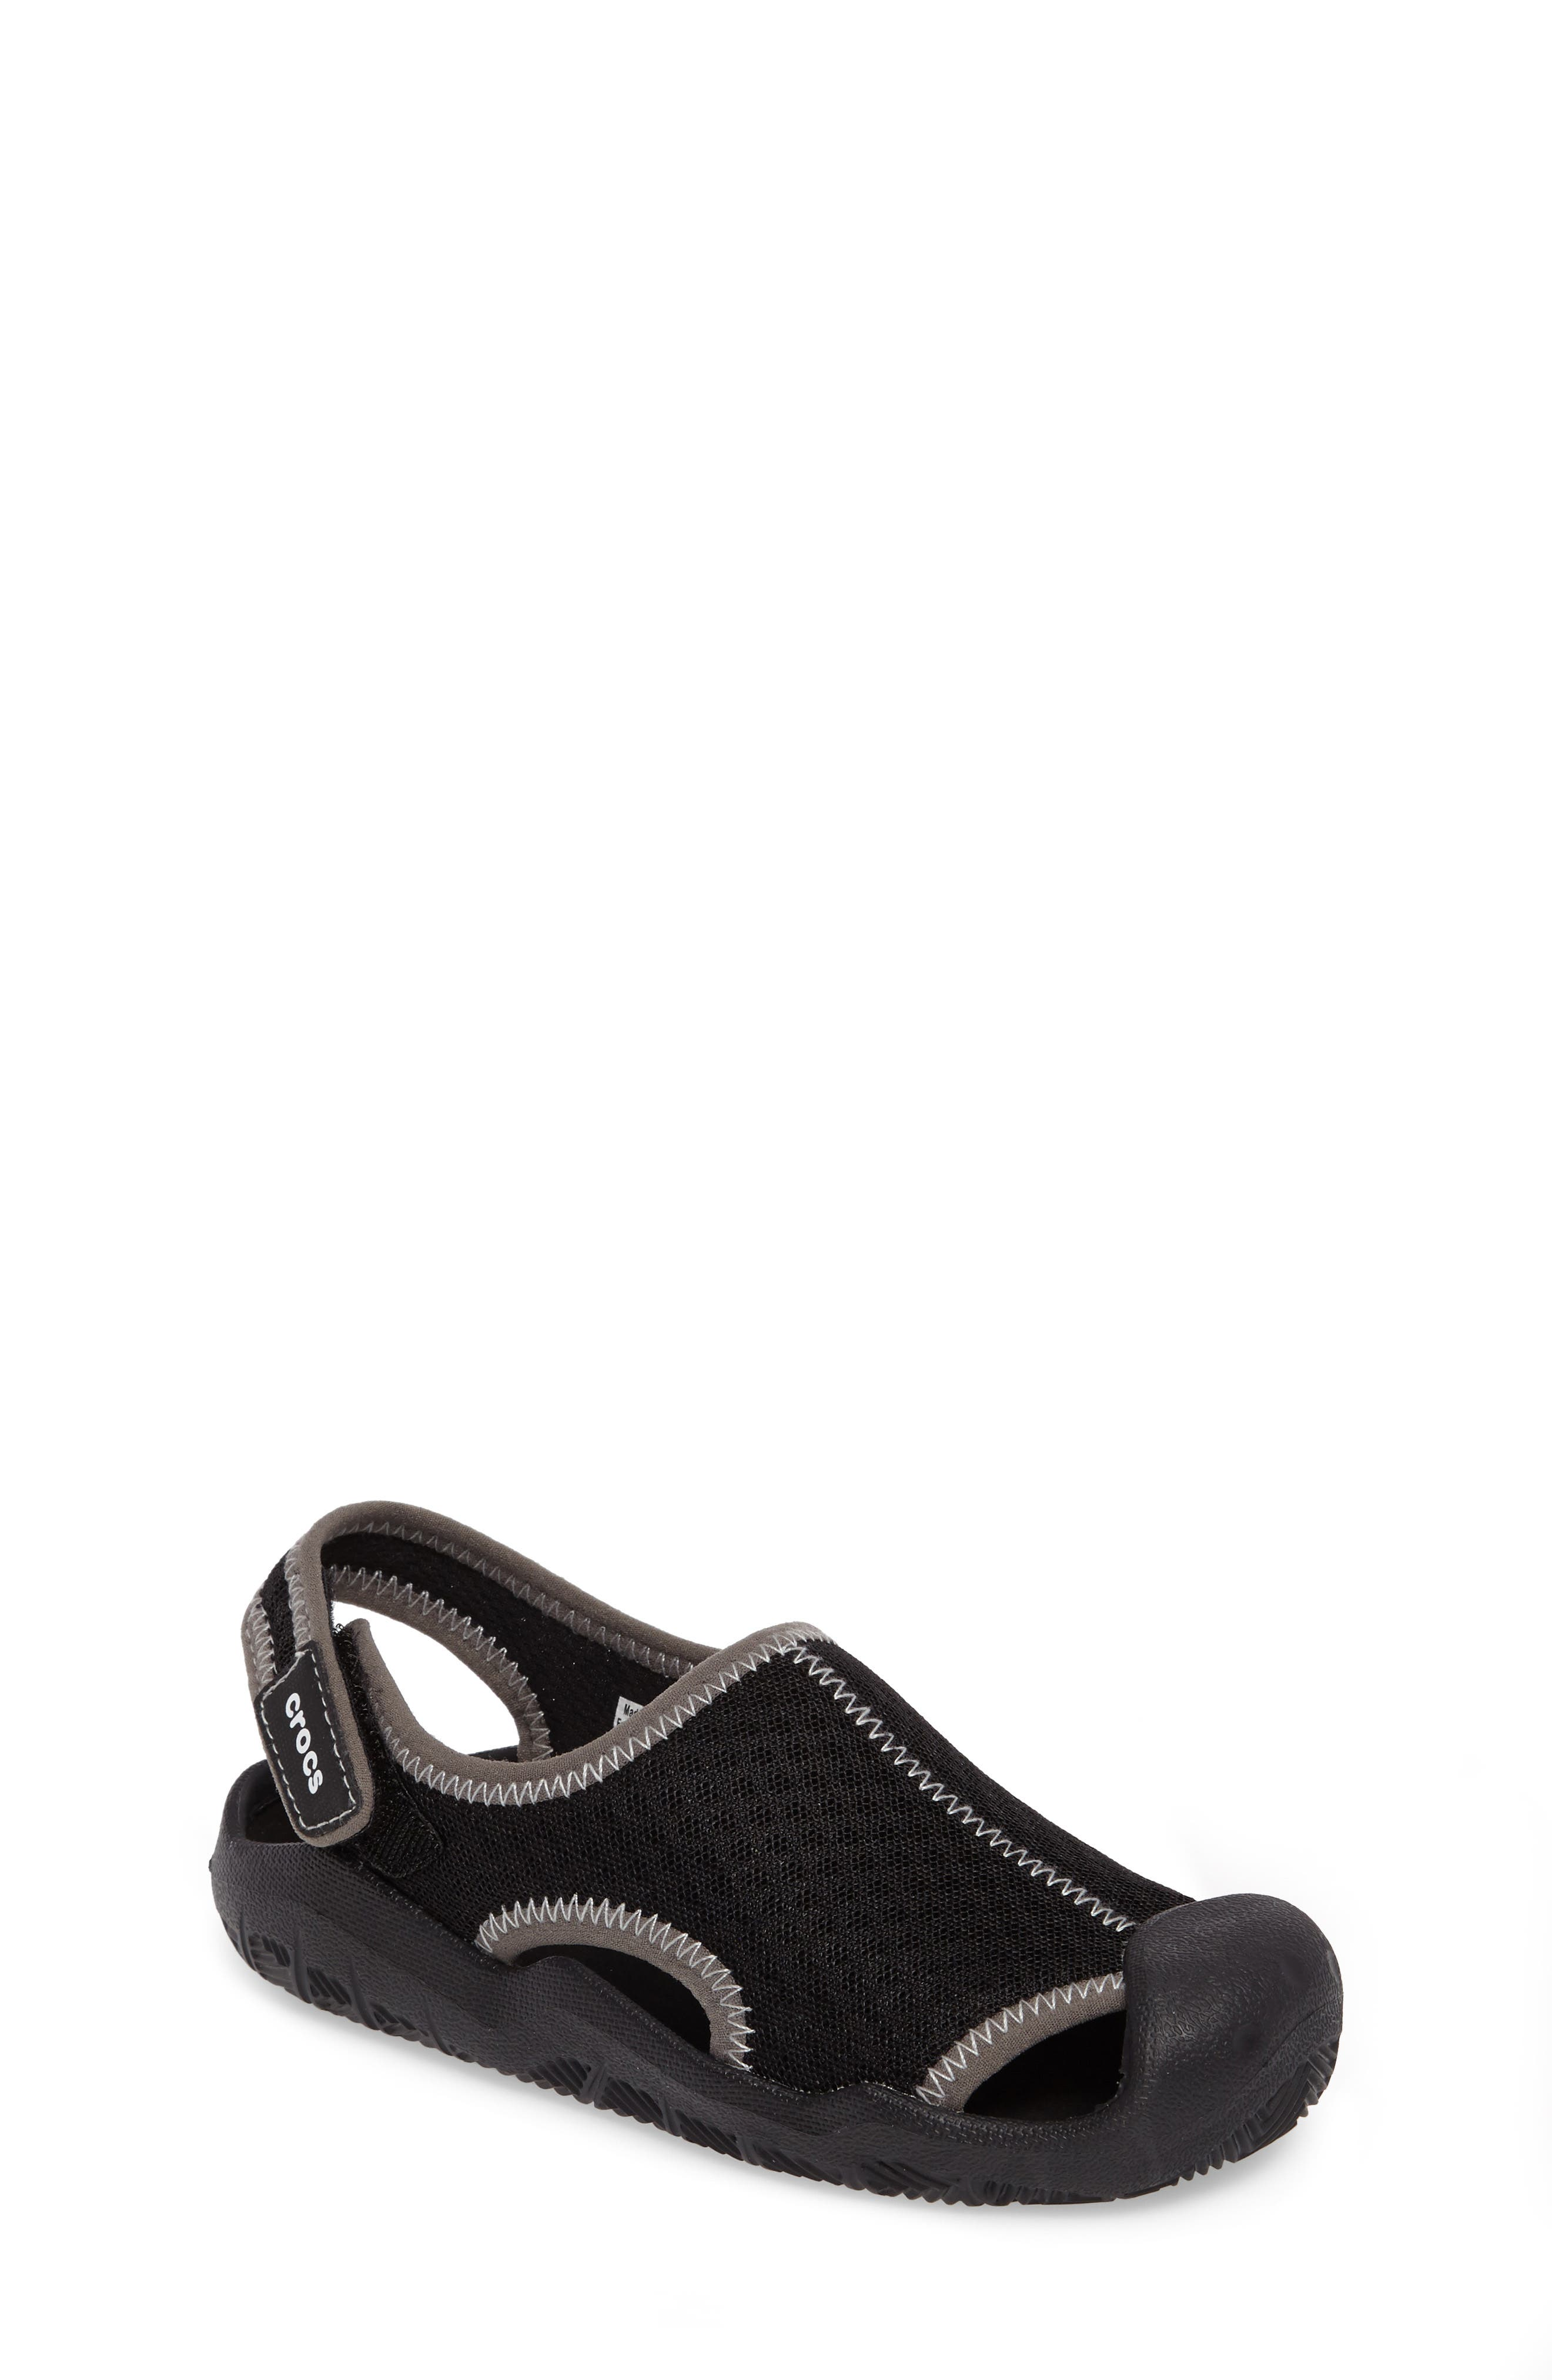 Swiftwater Sandal,                             Main thumbnail 6, color,